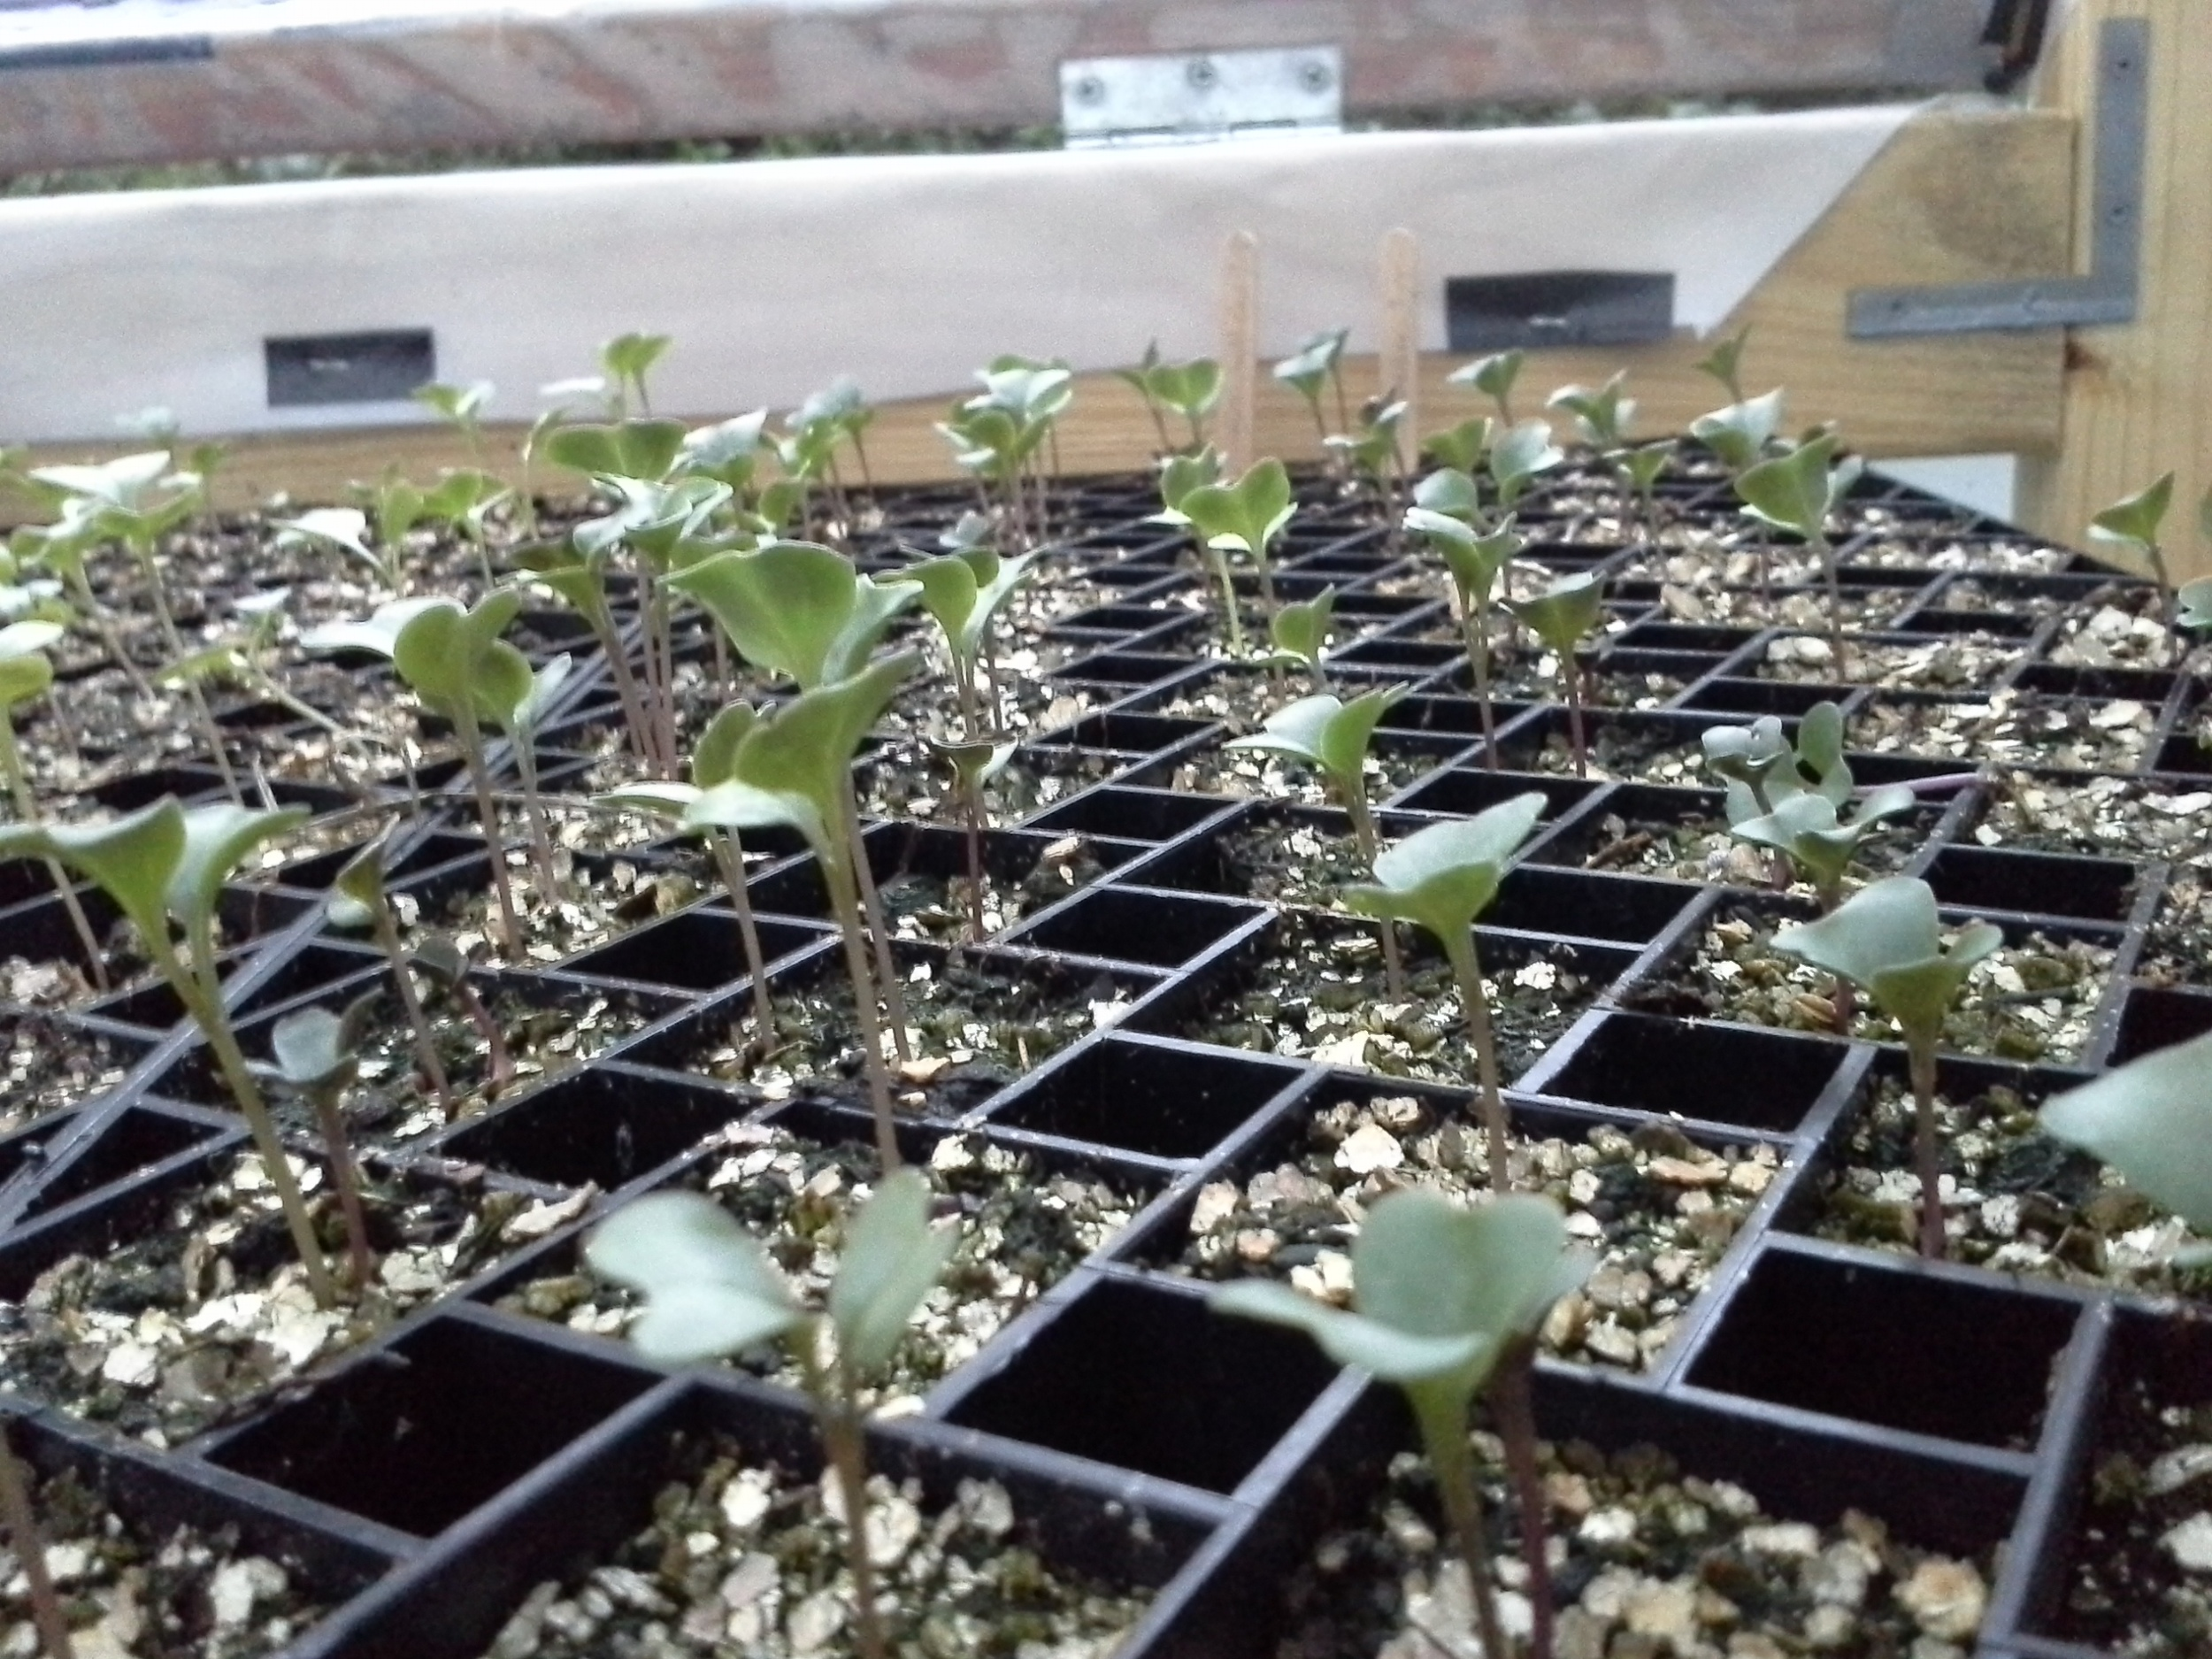 Some brassica babies waiting to be move on up in the world...